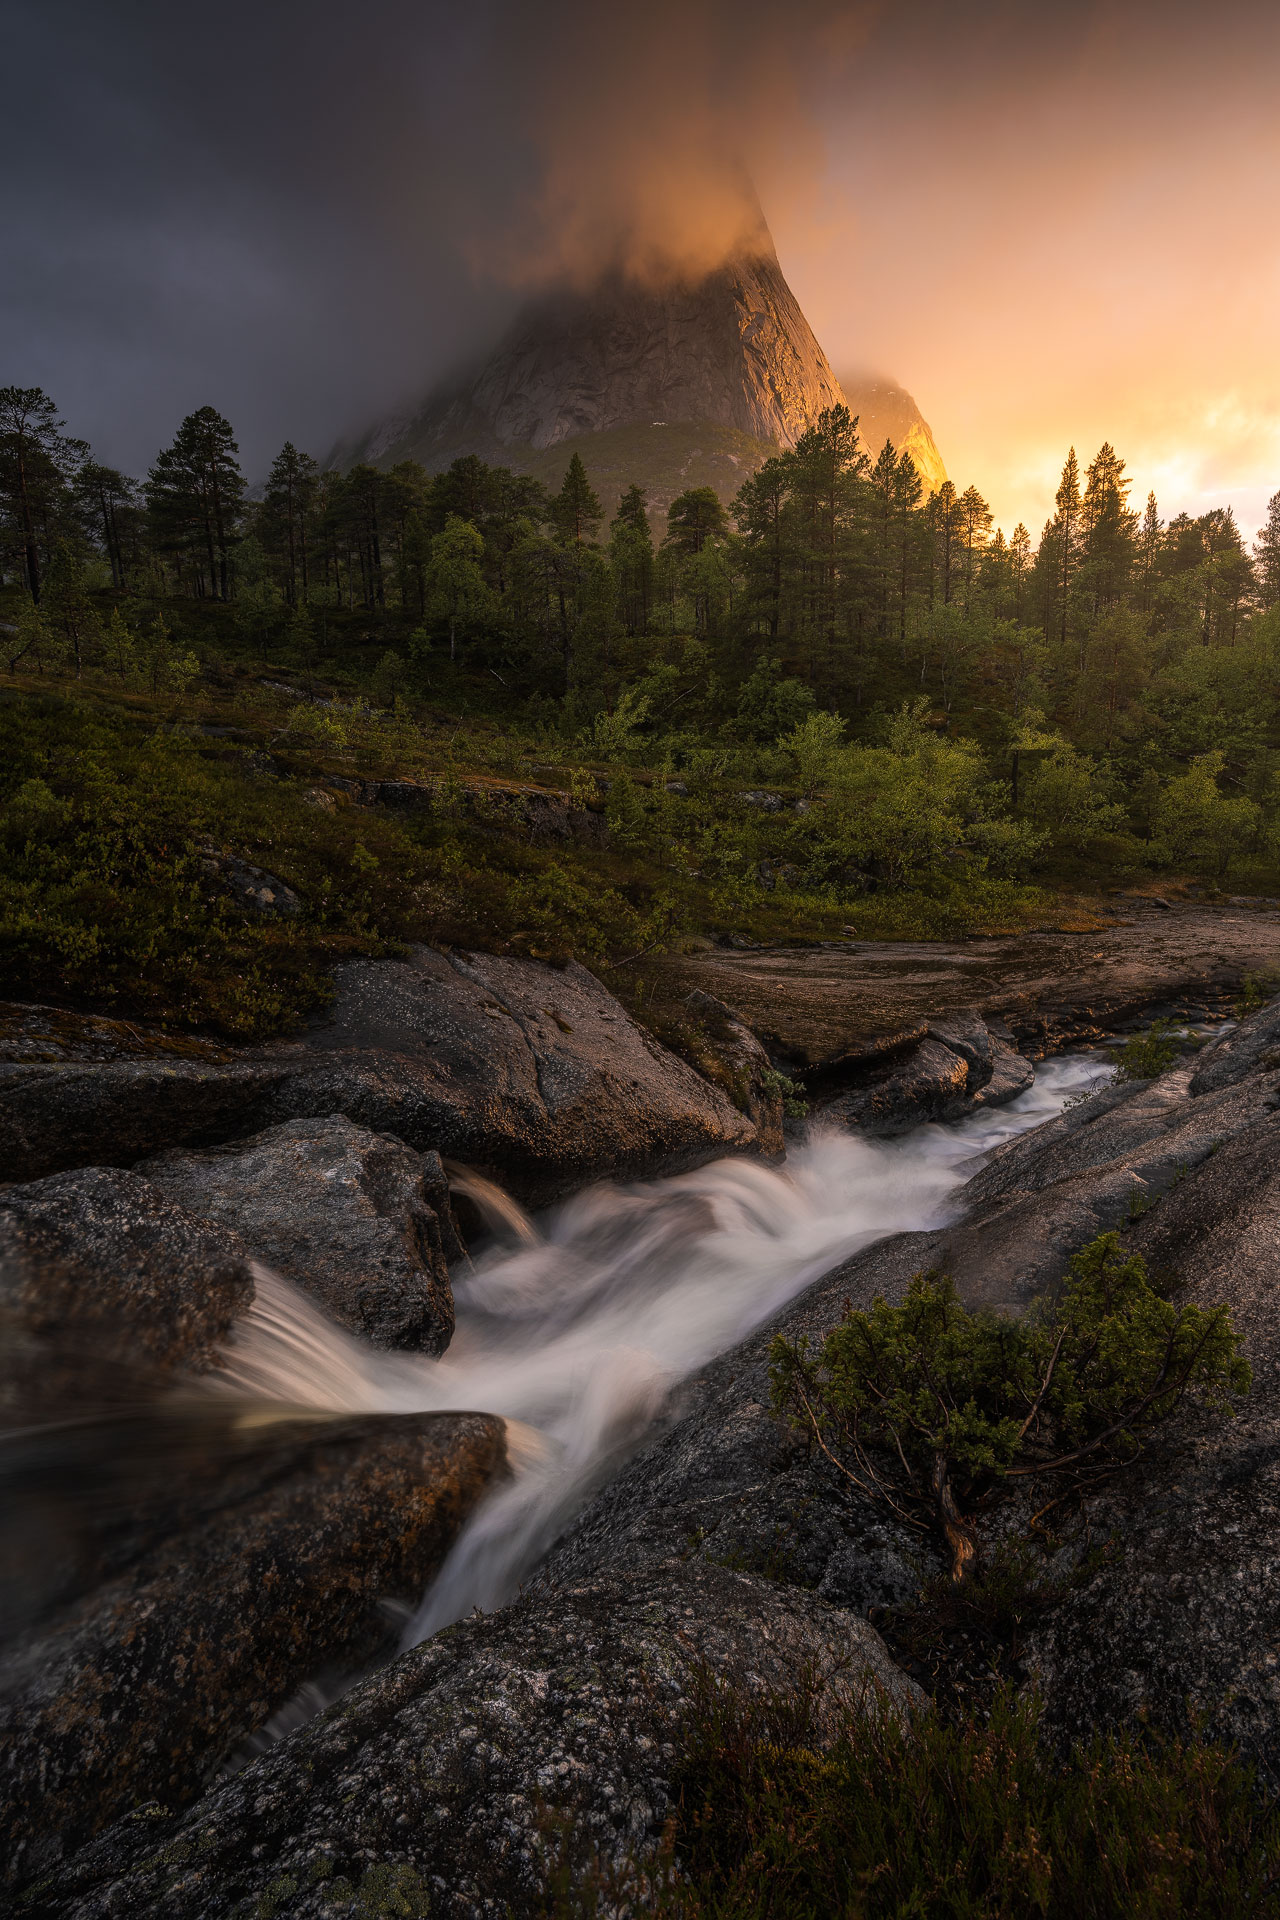 Patience in landscape photography